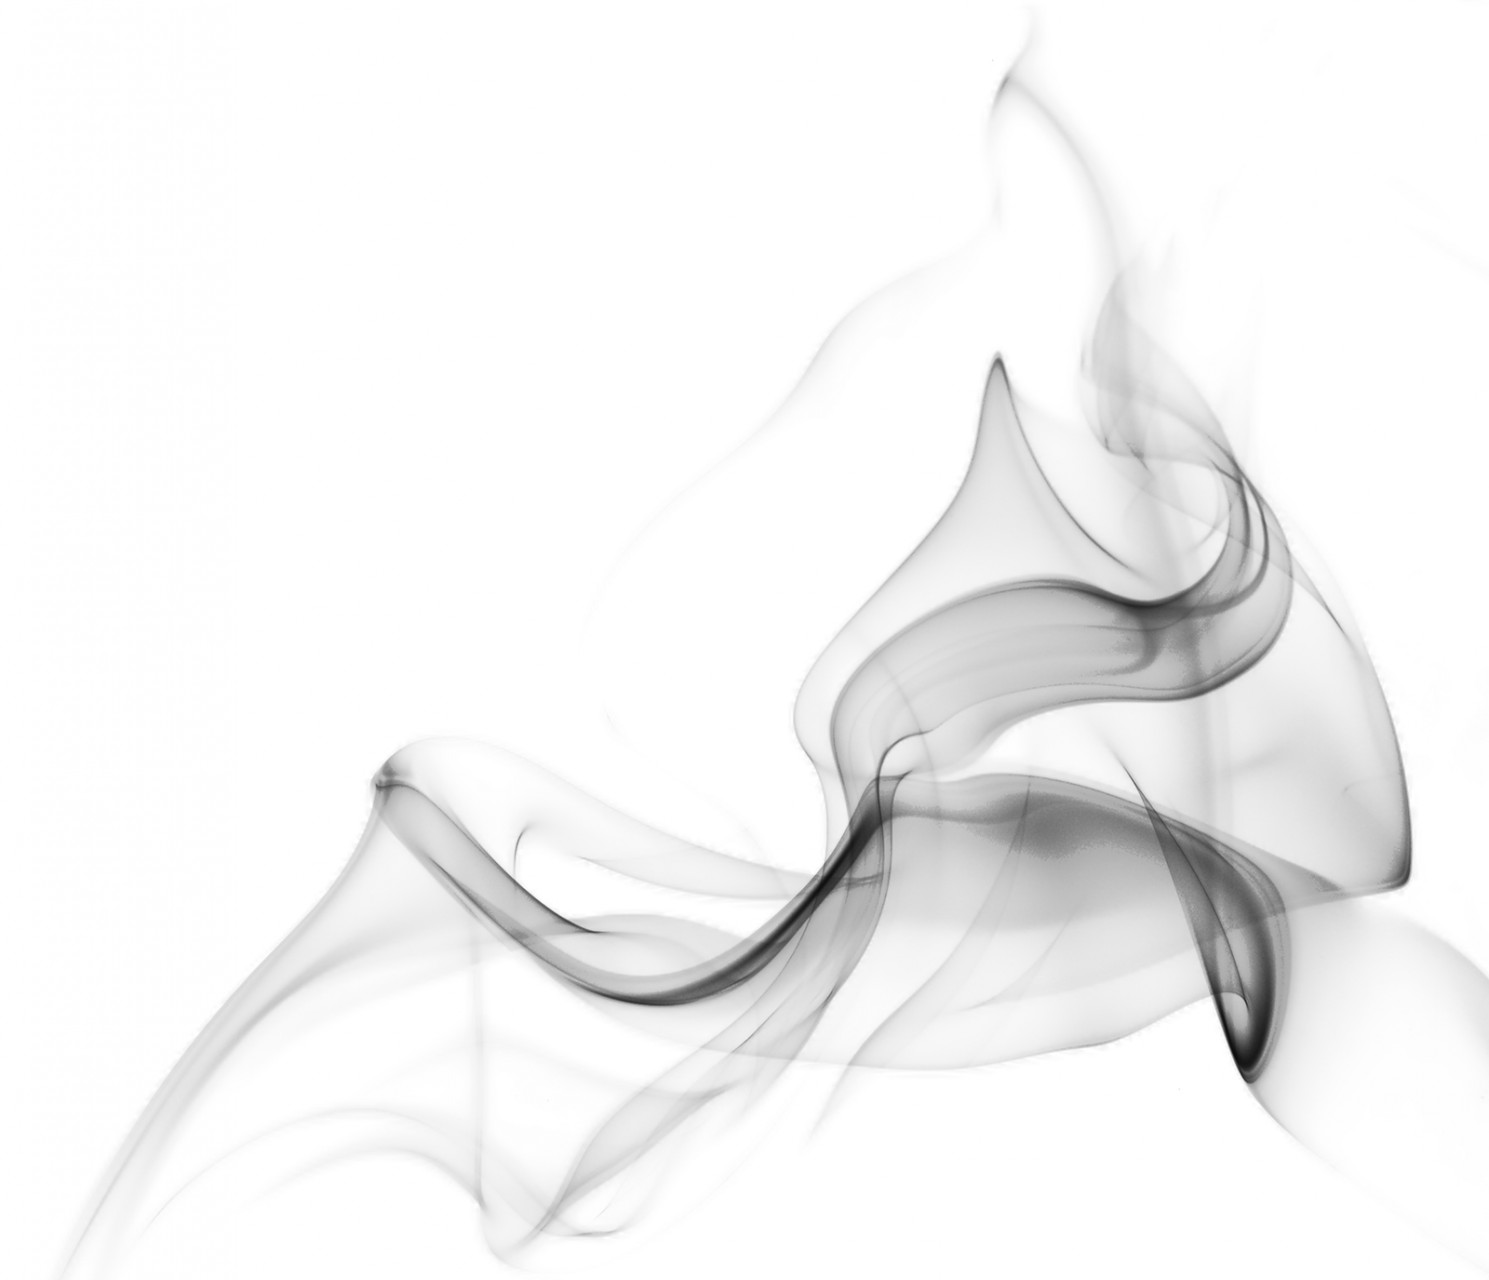 (untitled) Inverted Smoke